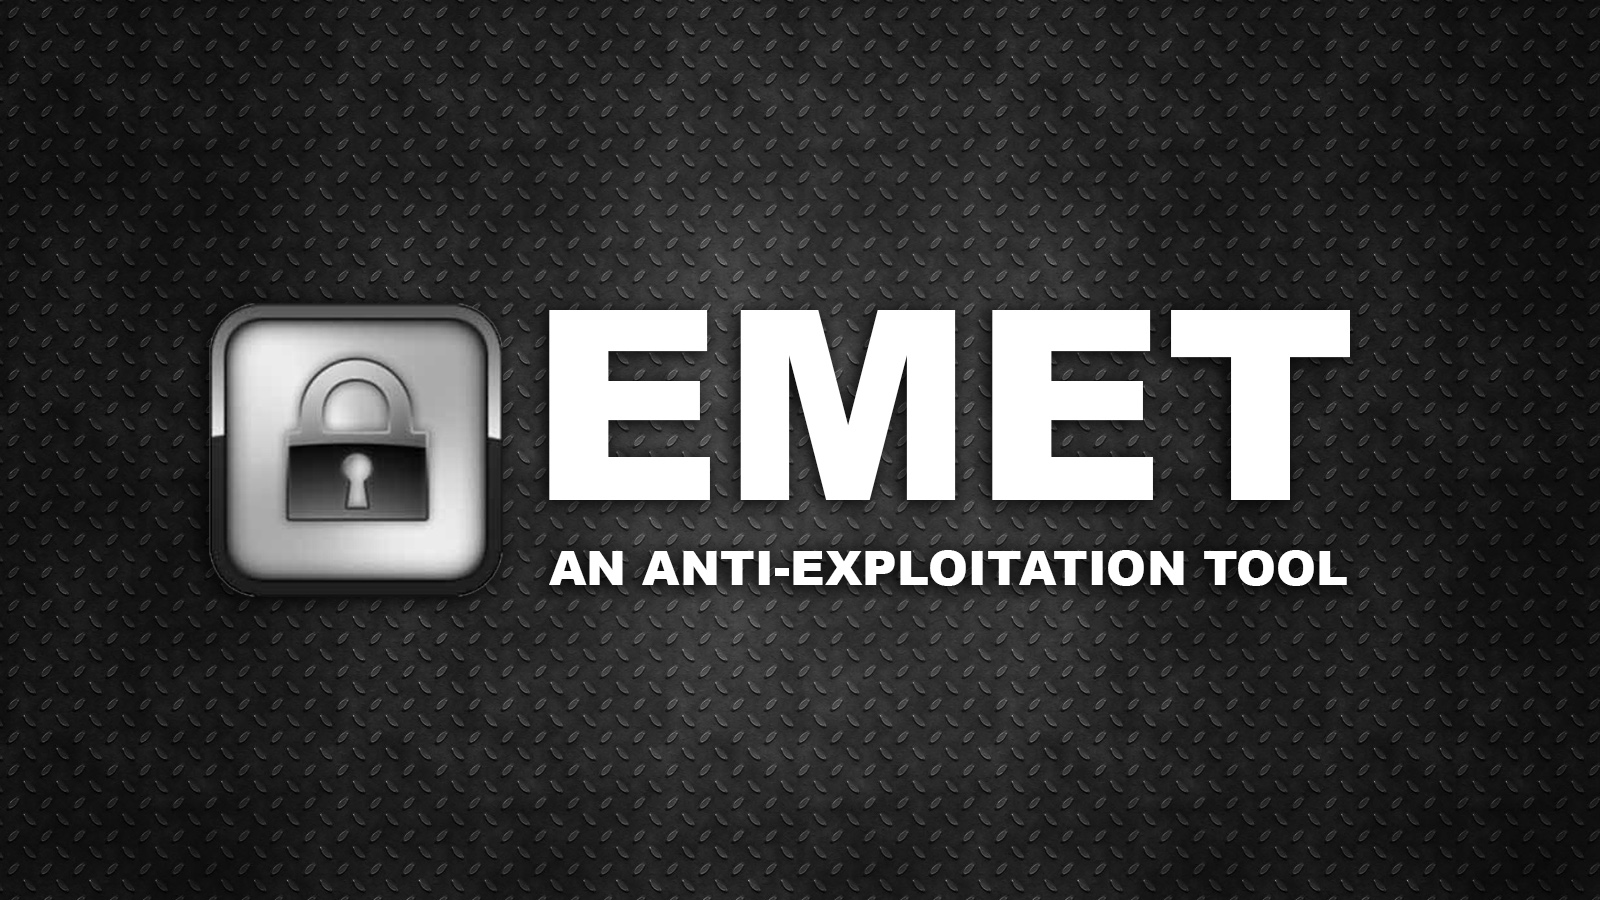 Enhanced Mitigation Experience Toolkit (EMET) - An Anti-Exploitation Tool